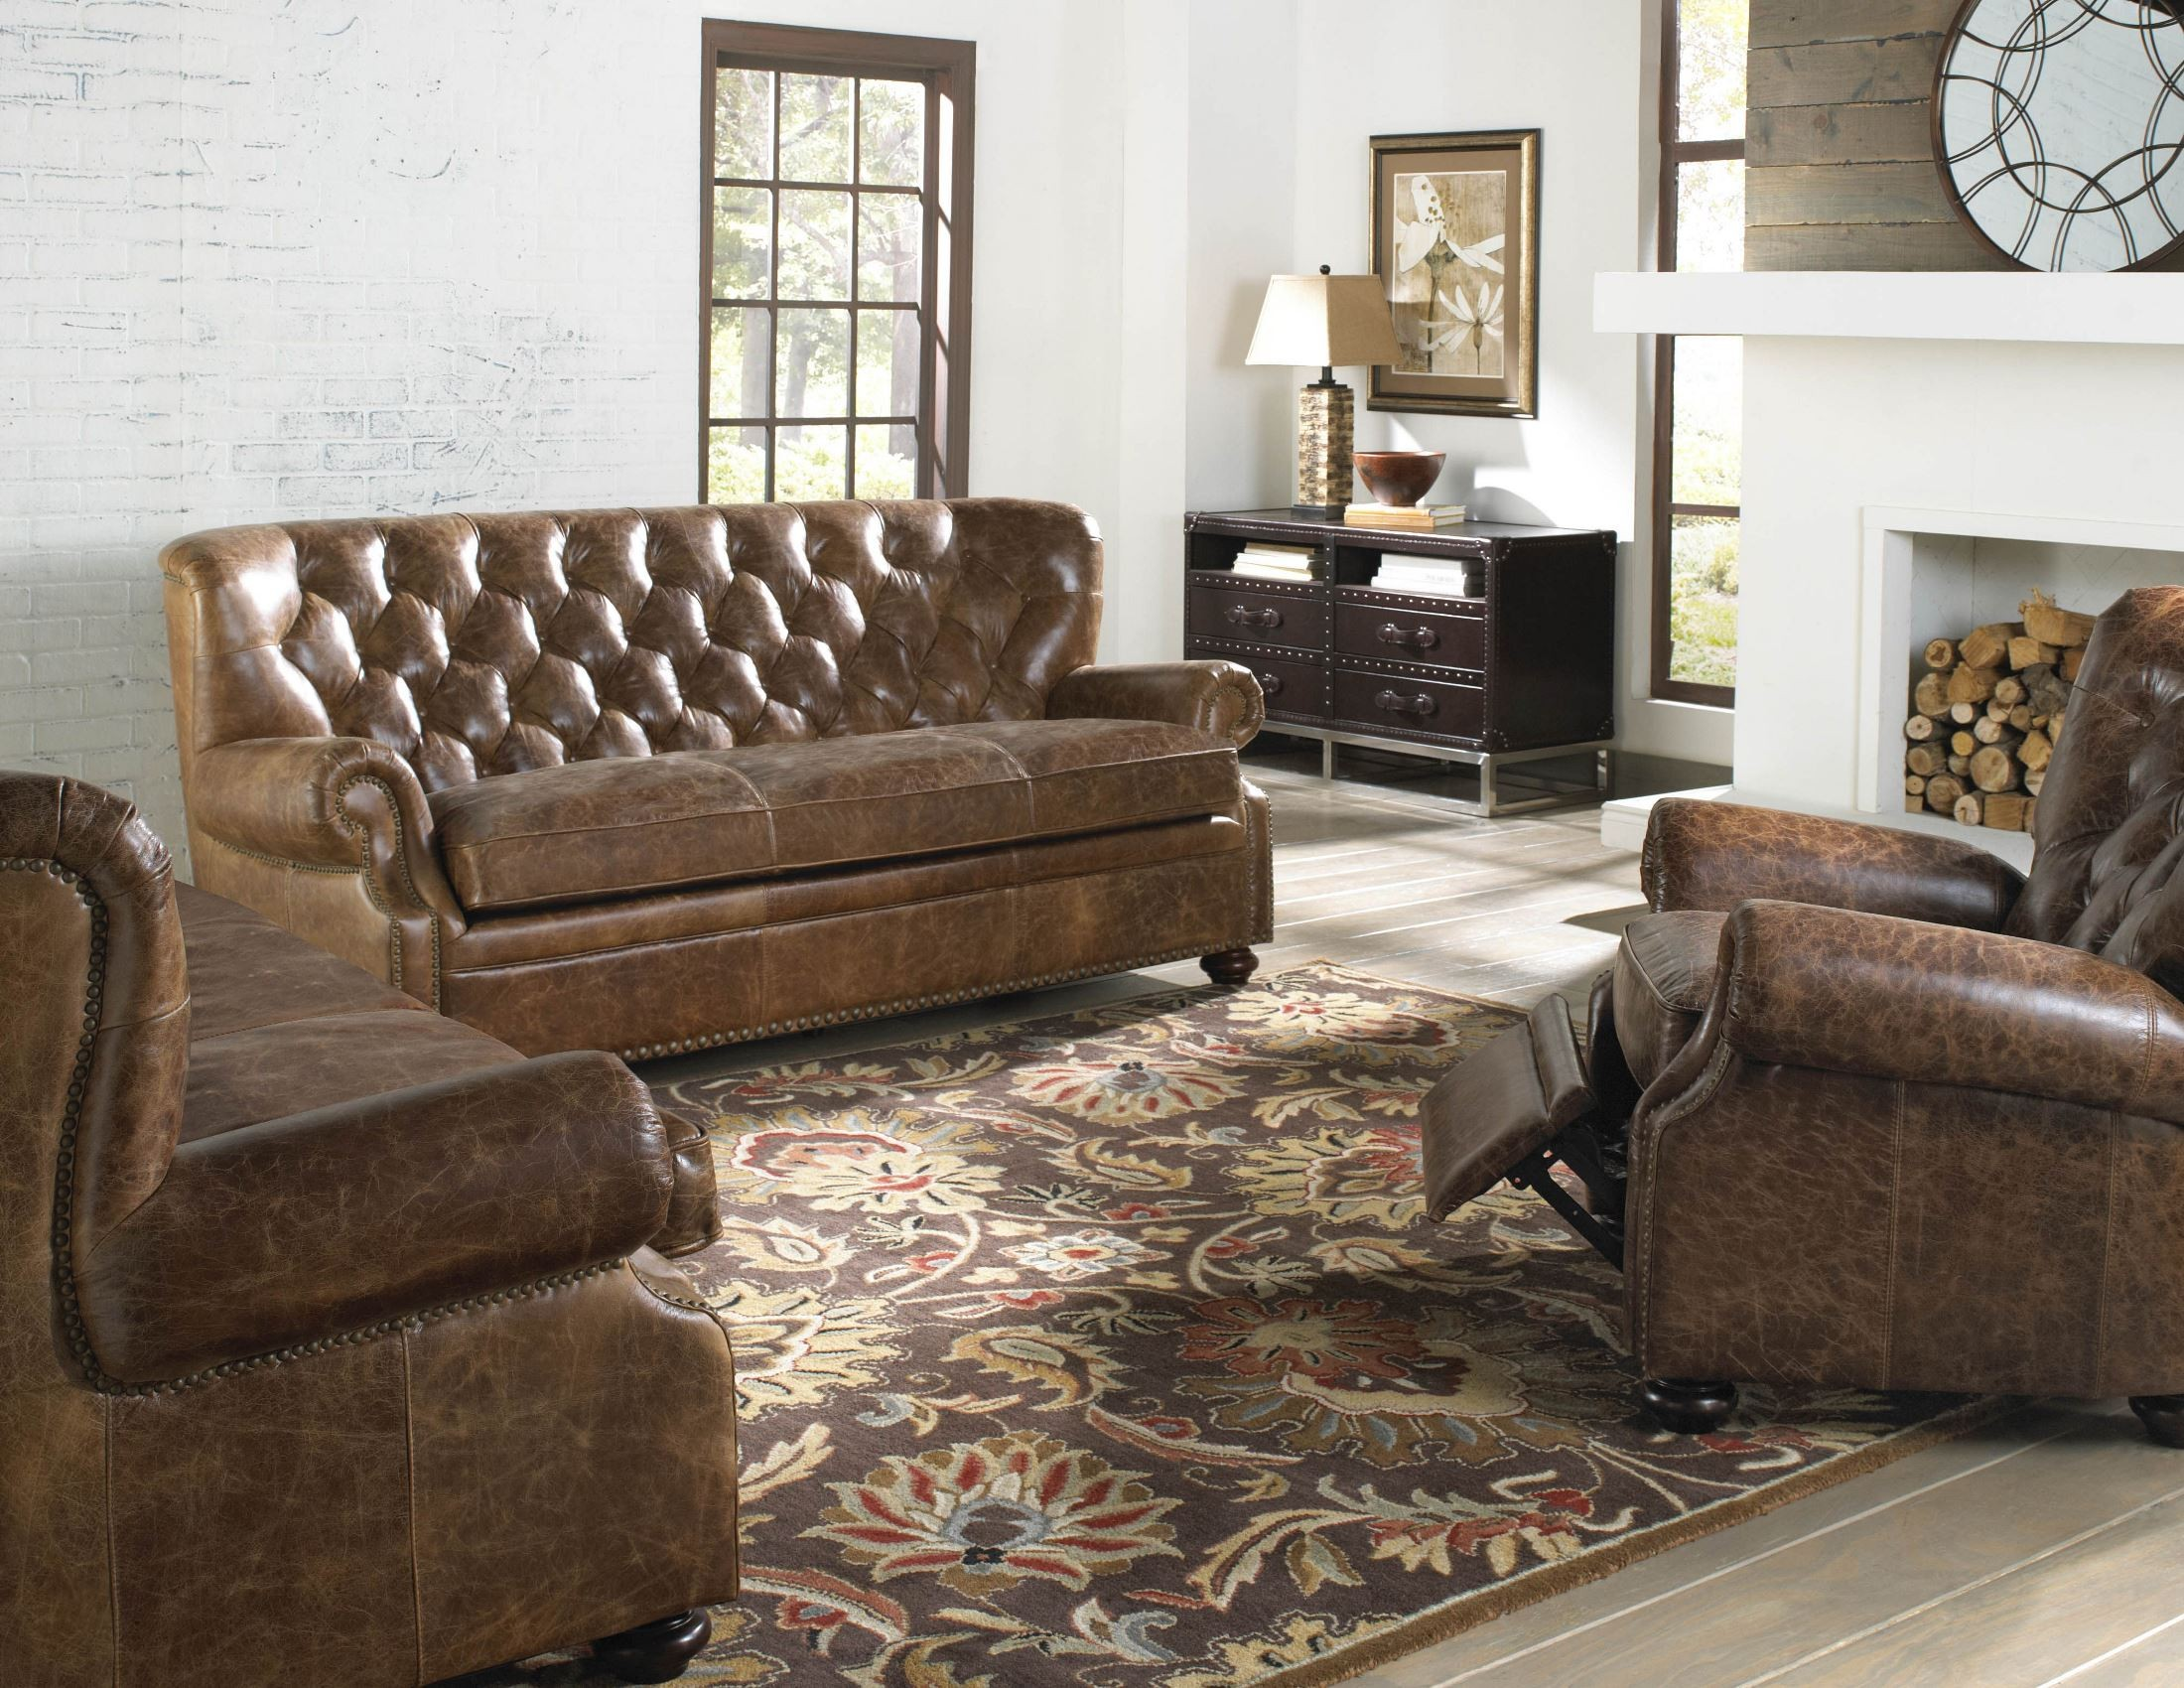 next brompton leather sofa designer beds louis coco living room set from lazzaro